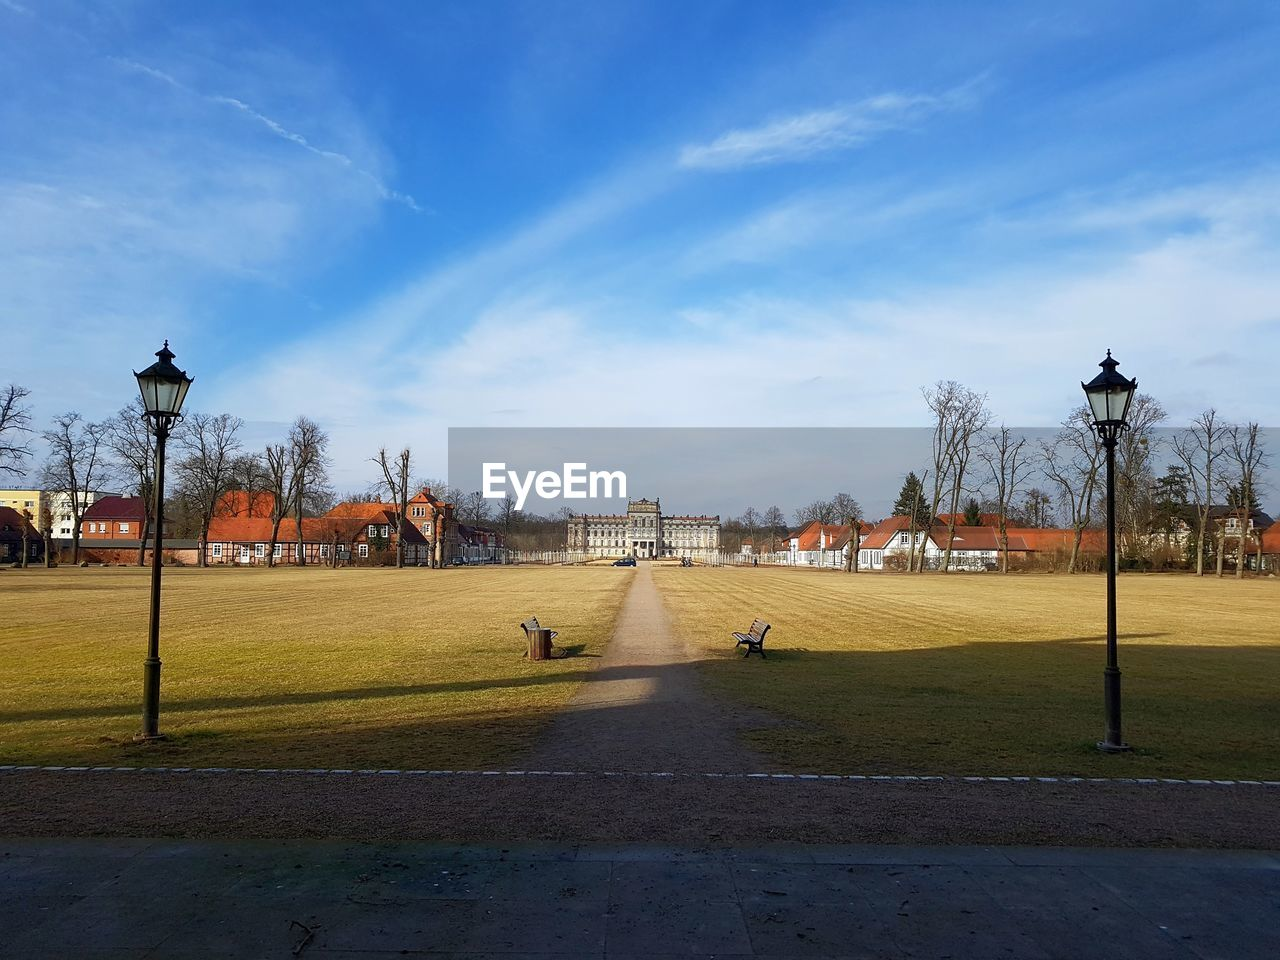 sky, street light, sport, cloud - sky, nature, architecture, building exterior, street, tree, lighting equipment, built structure, plant, day, city, grass, outdoors, sunlight, footpath, playing field, incidental people